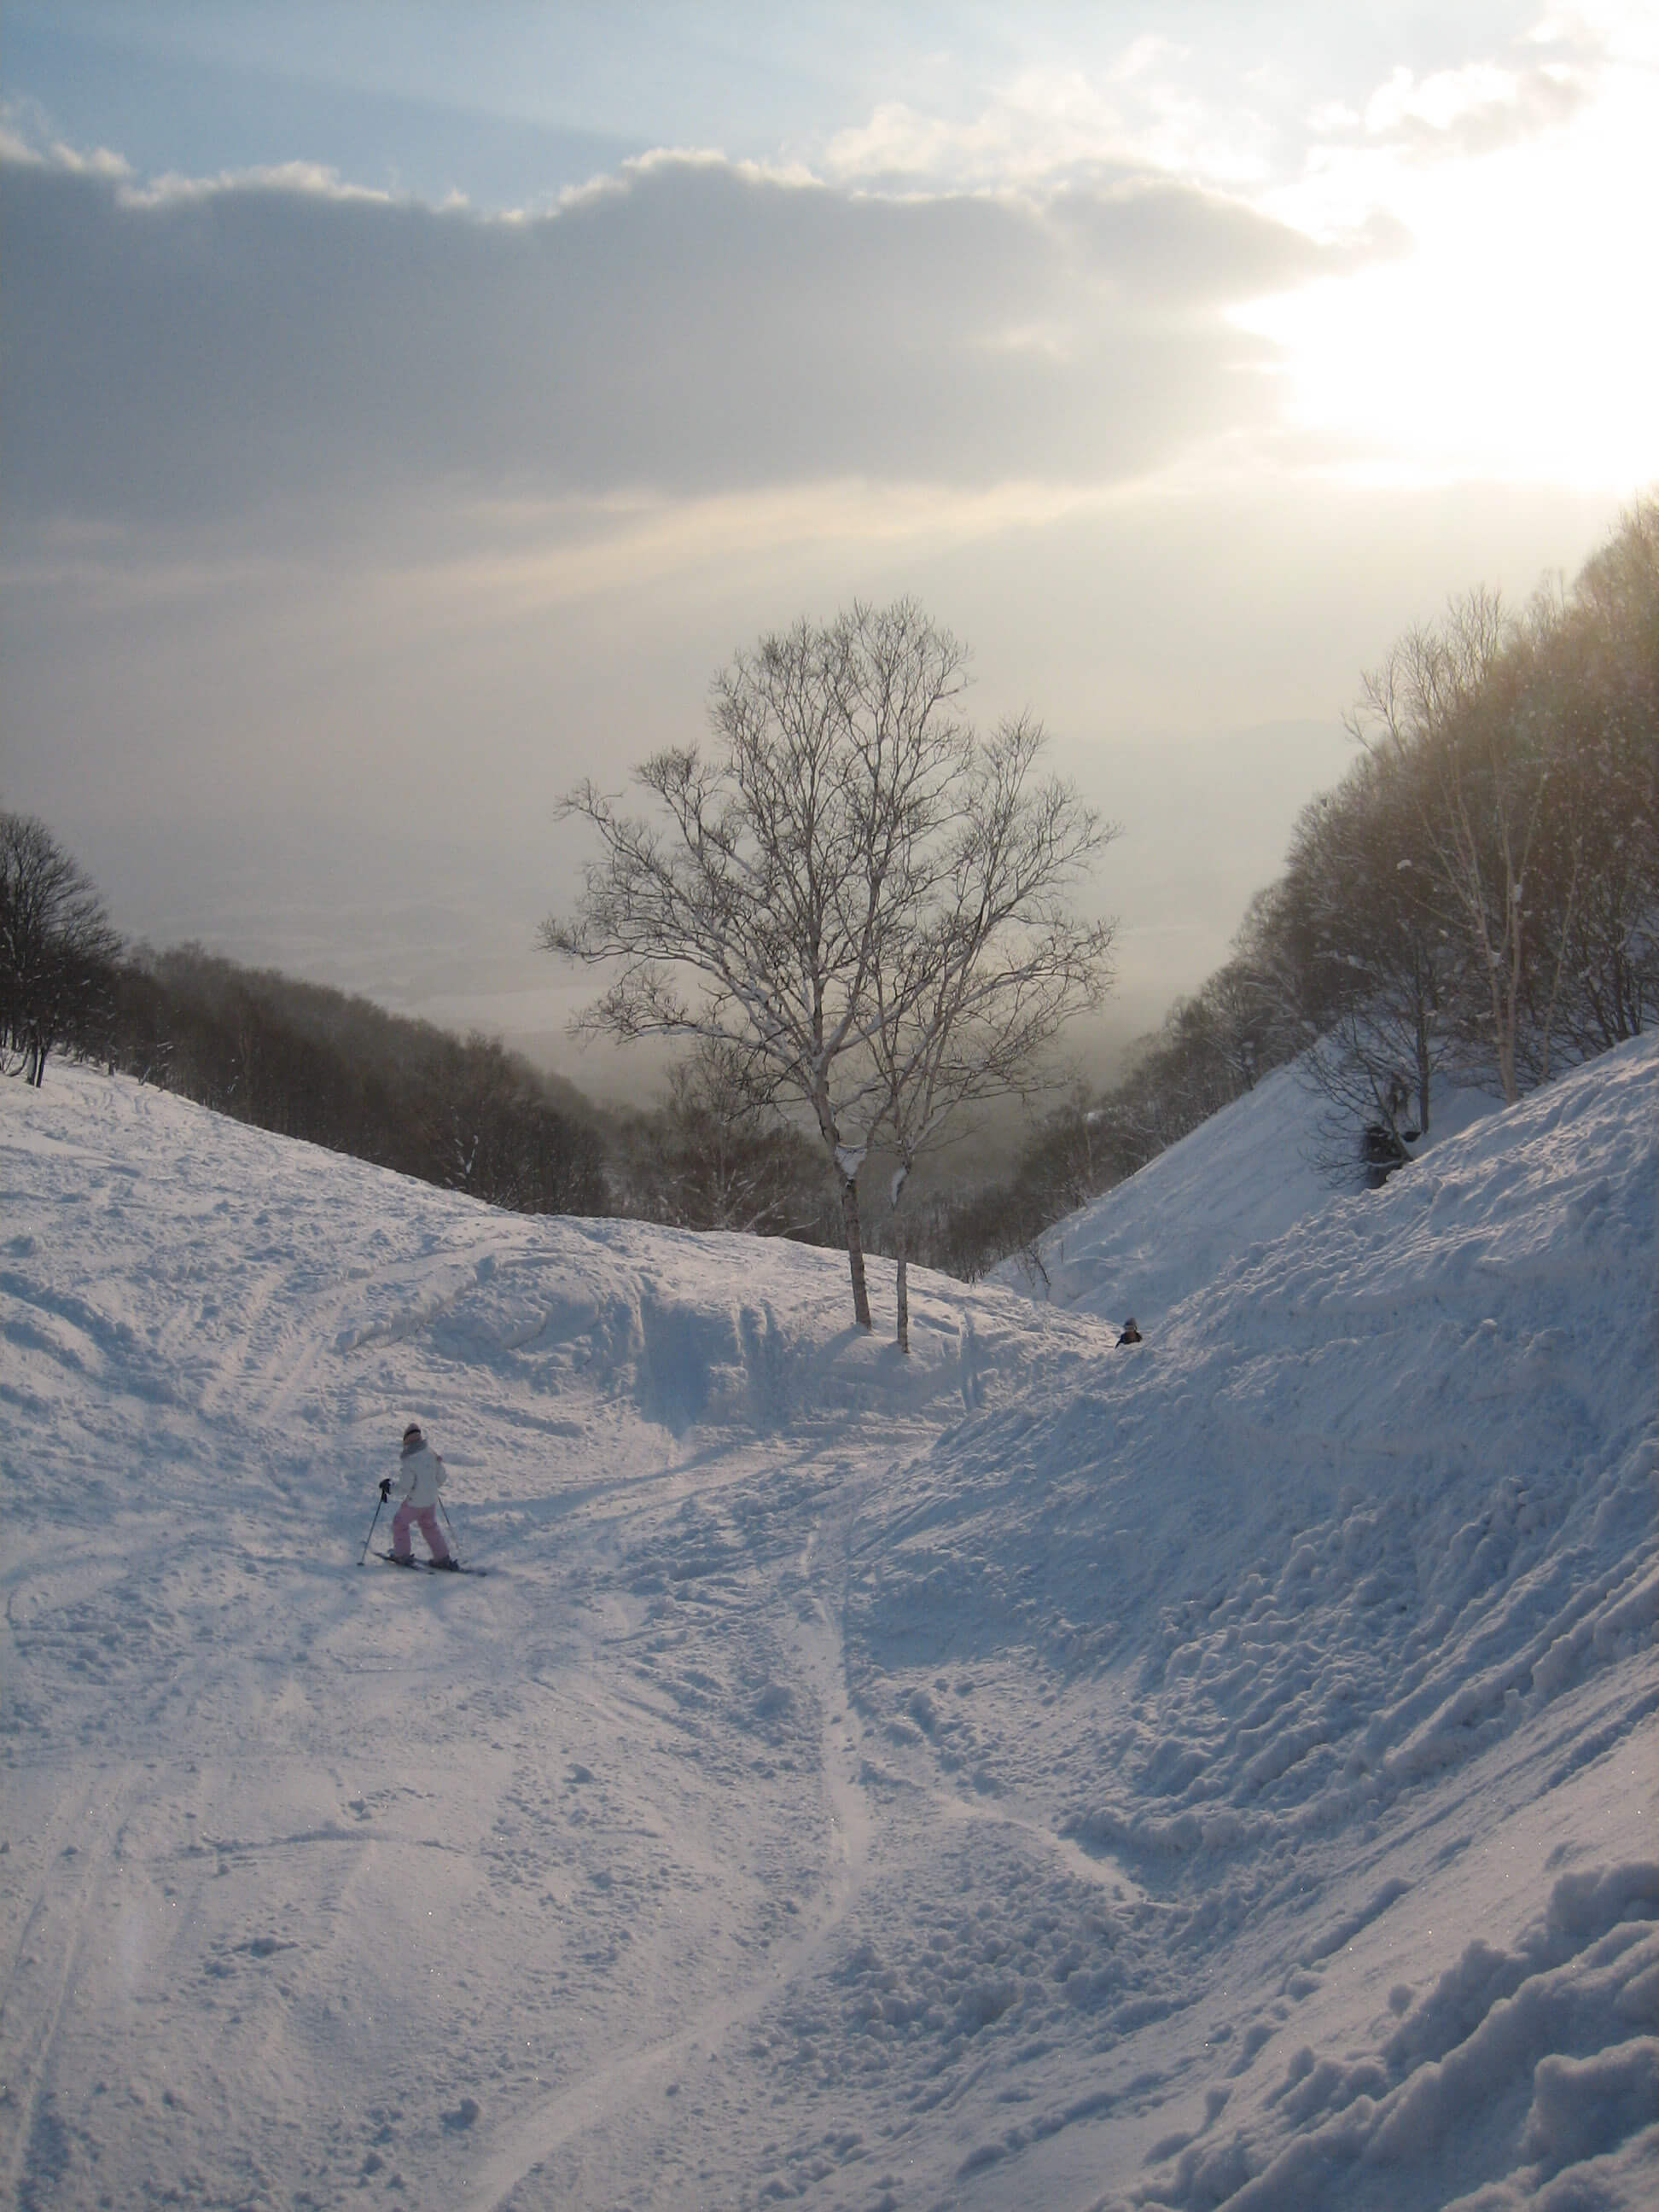 The best places to ski in Japan